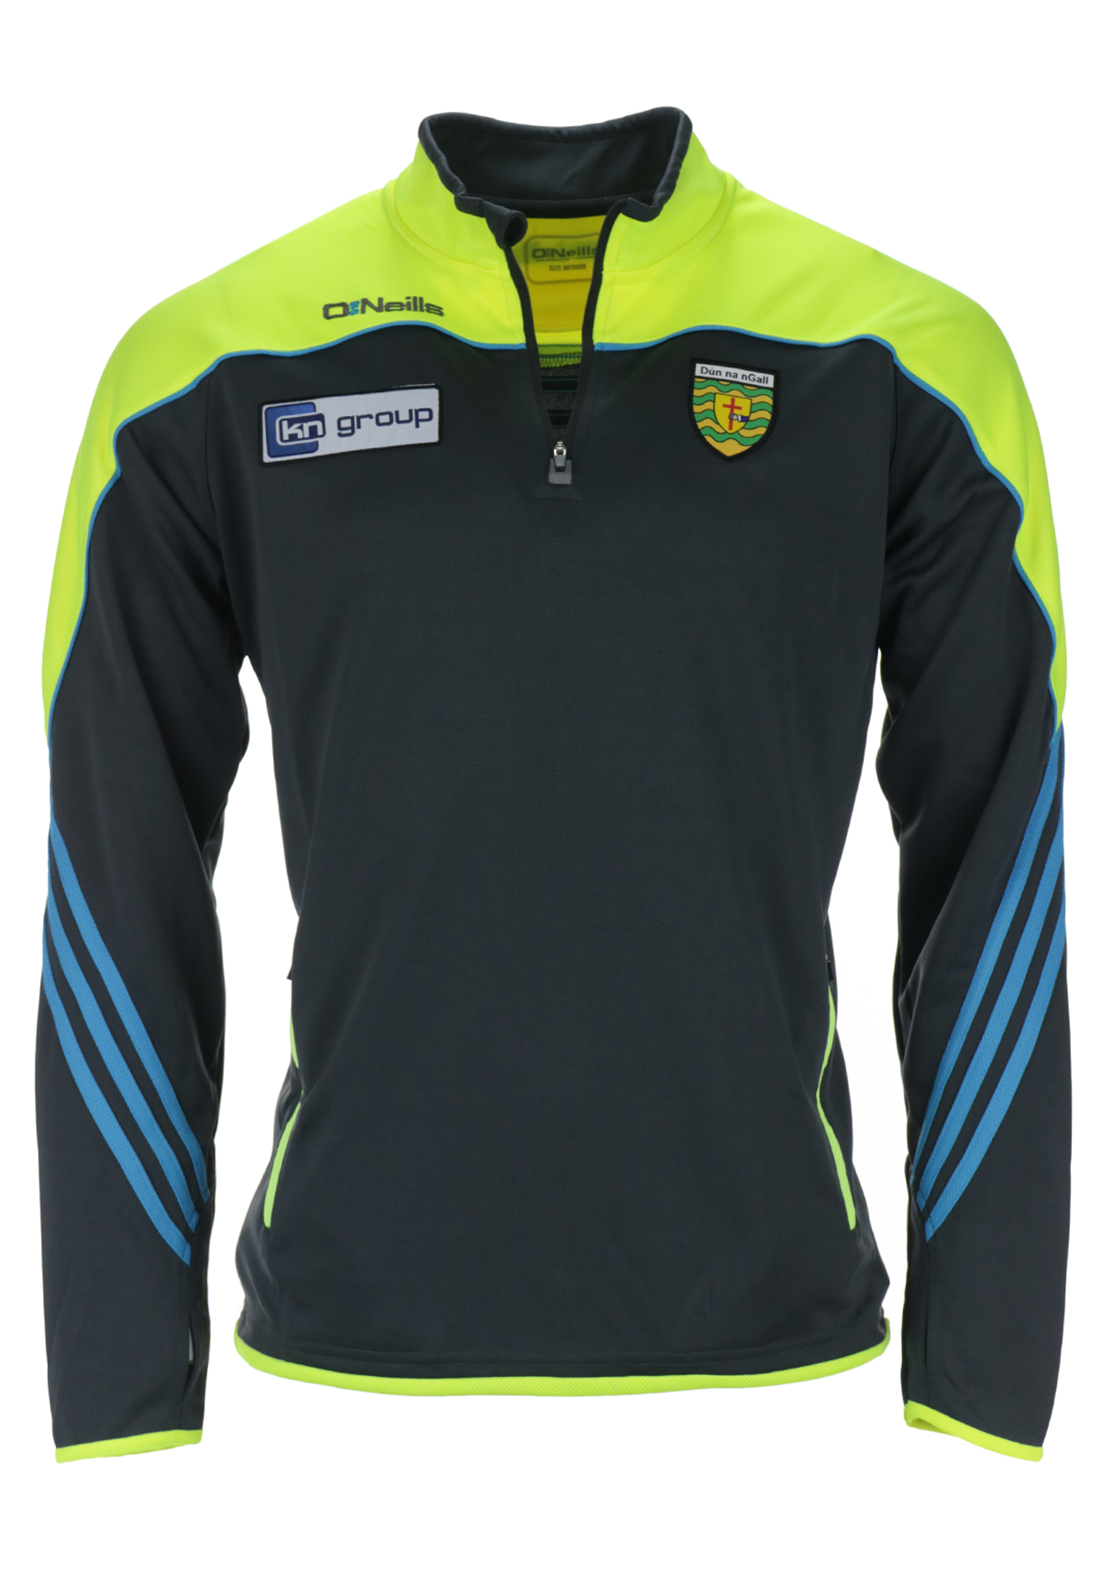 O'Neills Donegal GAA Parnell Half Zip Squad Top, Grey and Yellow